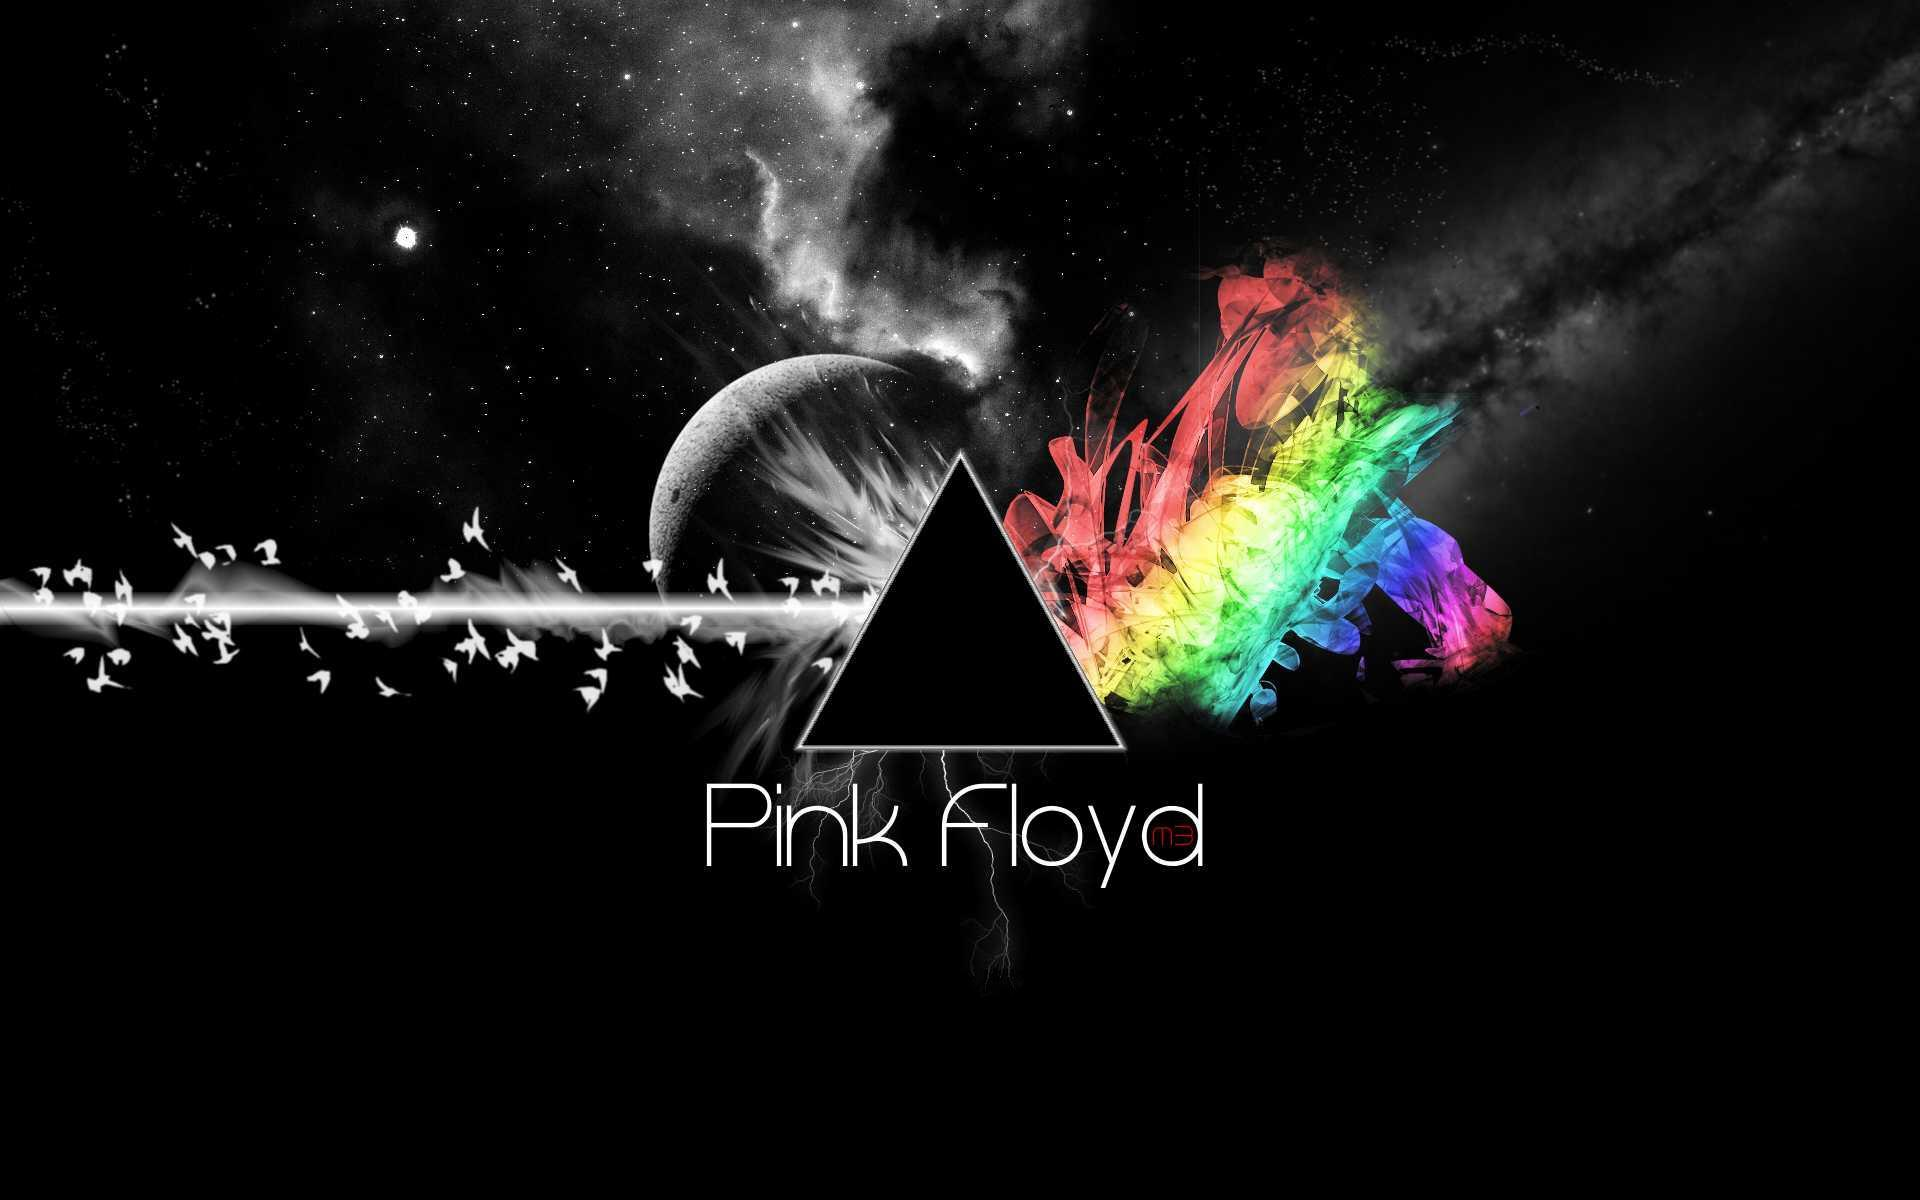 Pink Floyd Wallpaper 1920x1080